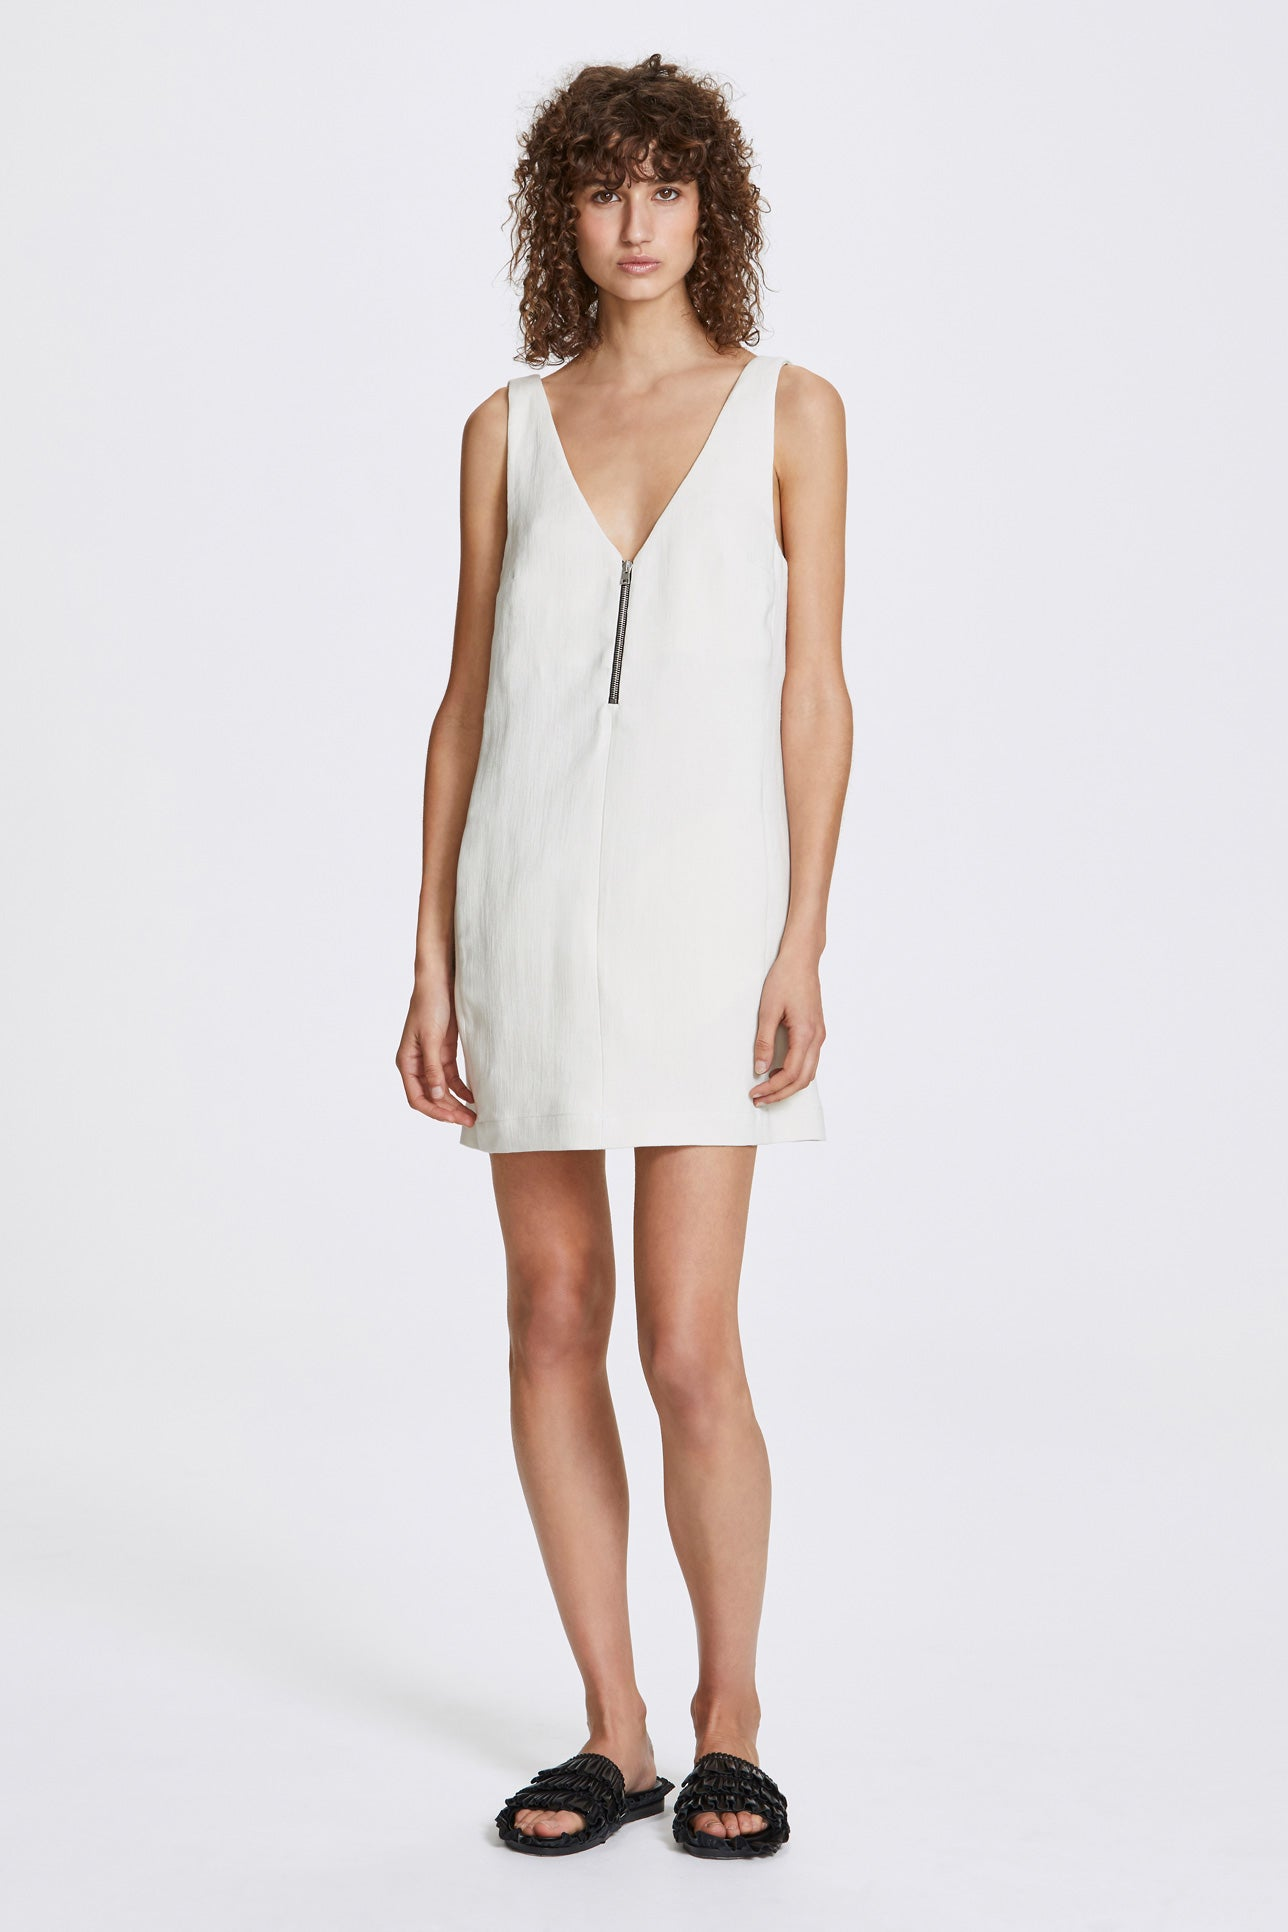 Zip a-line dress - Heavy linen - Natural - Resortwear dress - Her Line